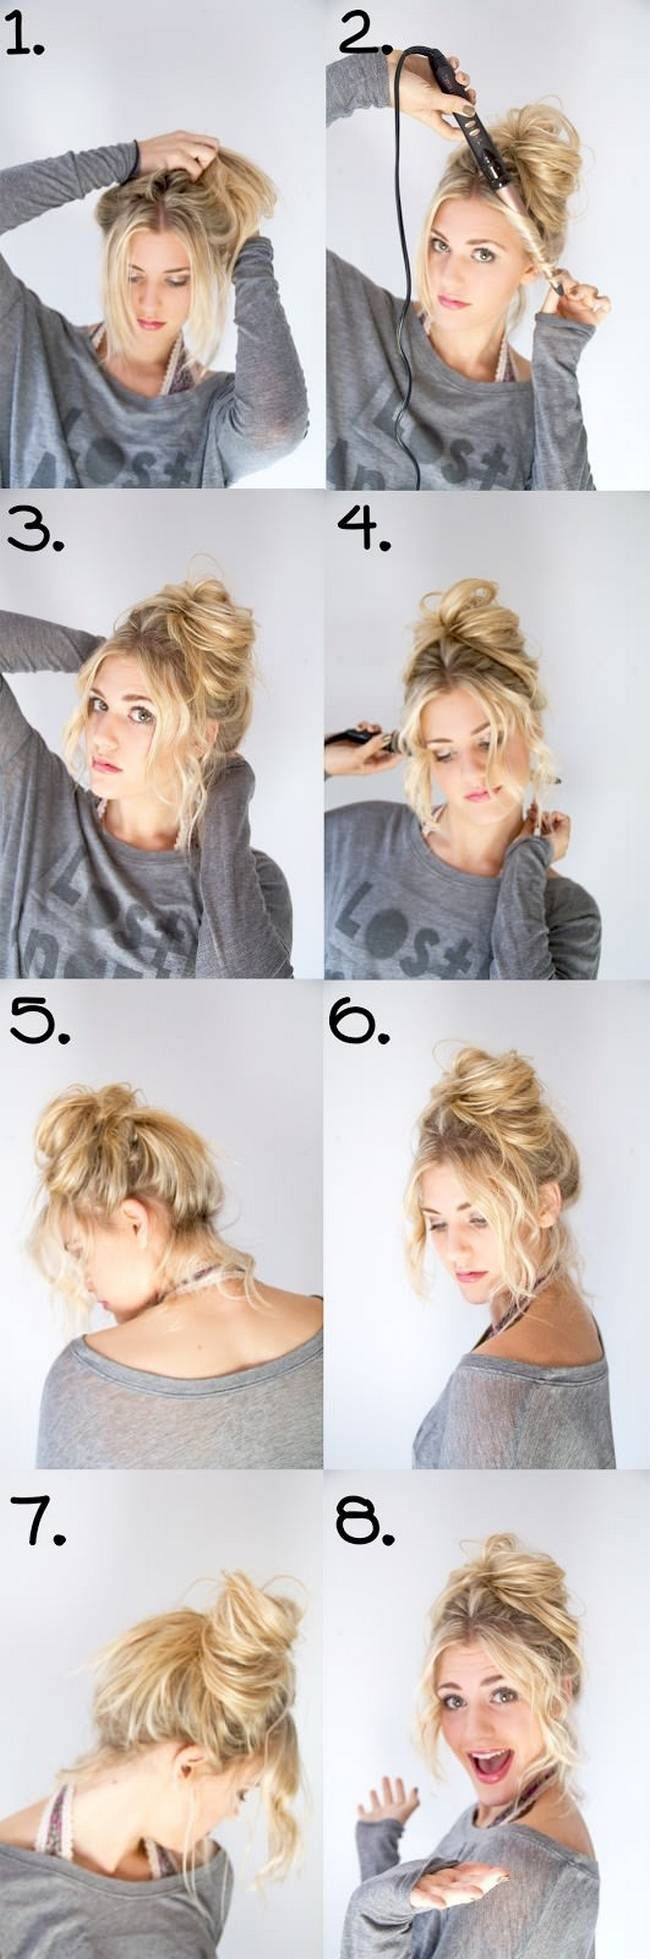 Pin by Ellouise on Hairstyle | Pinterest | Hair style, Updo and Hair ...